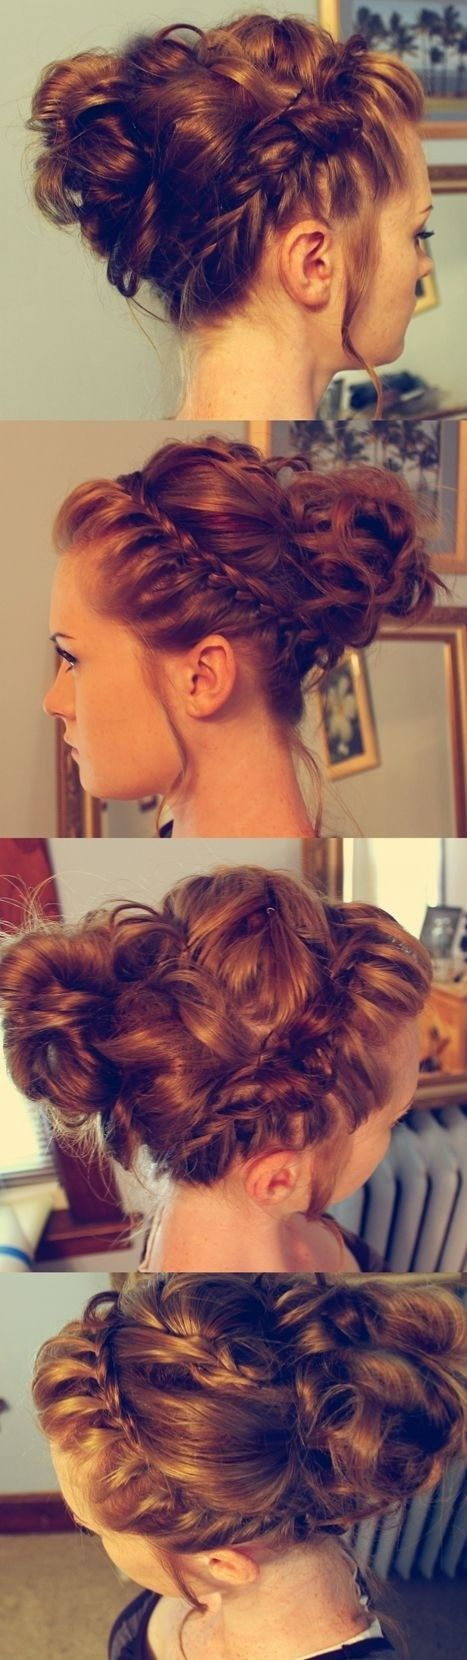 Just love bun updos like this one with a crown braid.... If you have medium to long hair you naturally have many styling options. So should you be tired of your usual hairstyles here are others to try.  For even more quick click over to TerrificTresses.com.